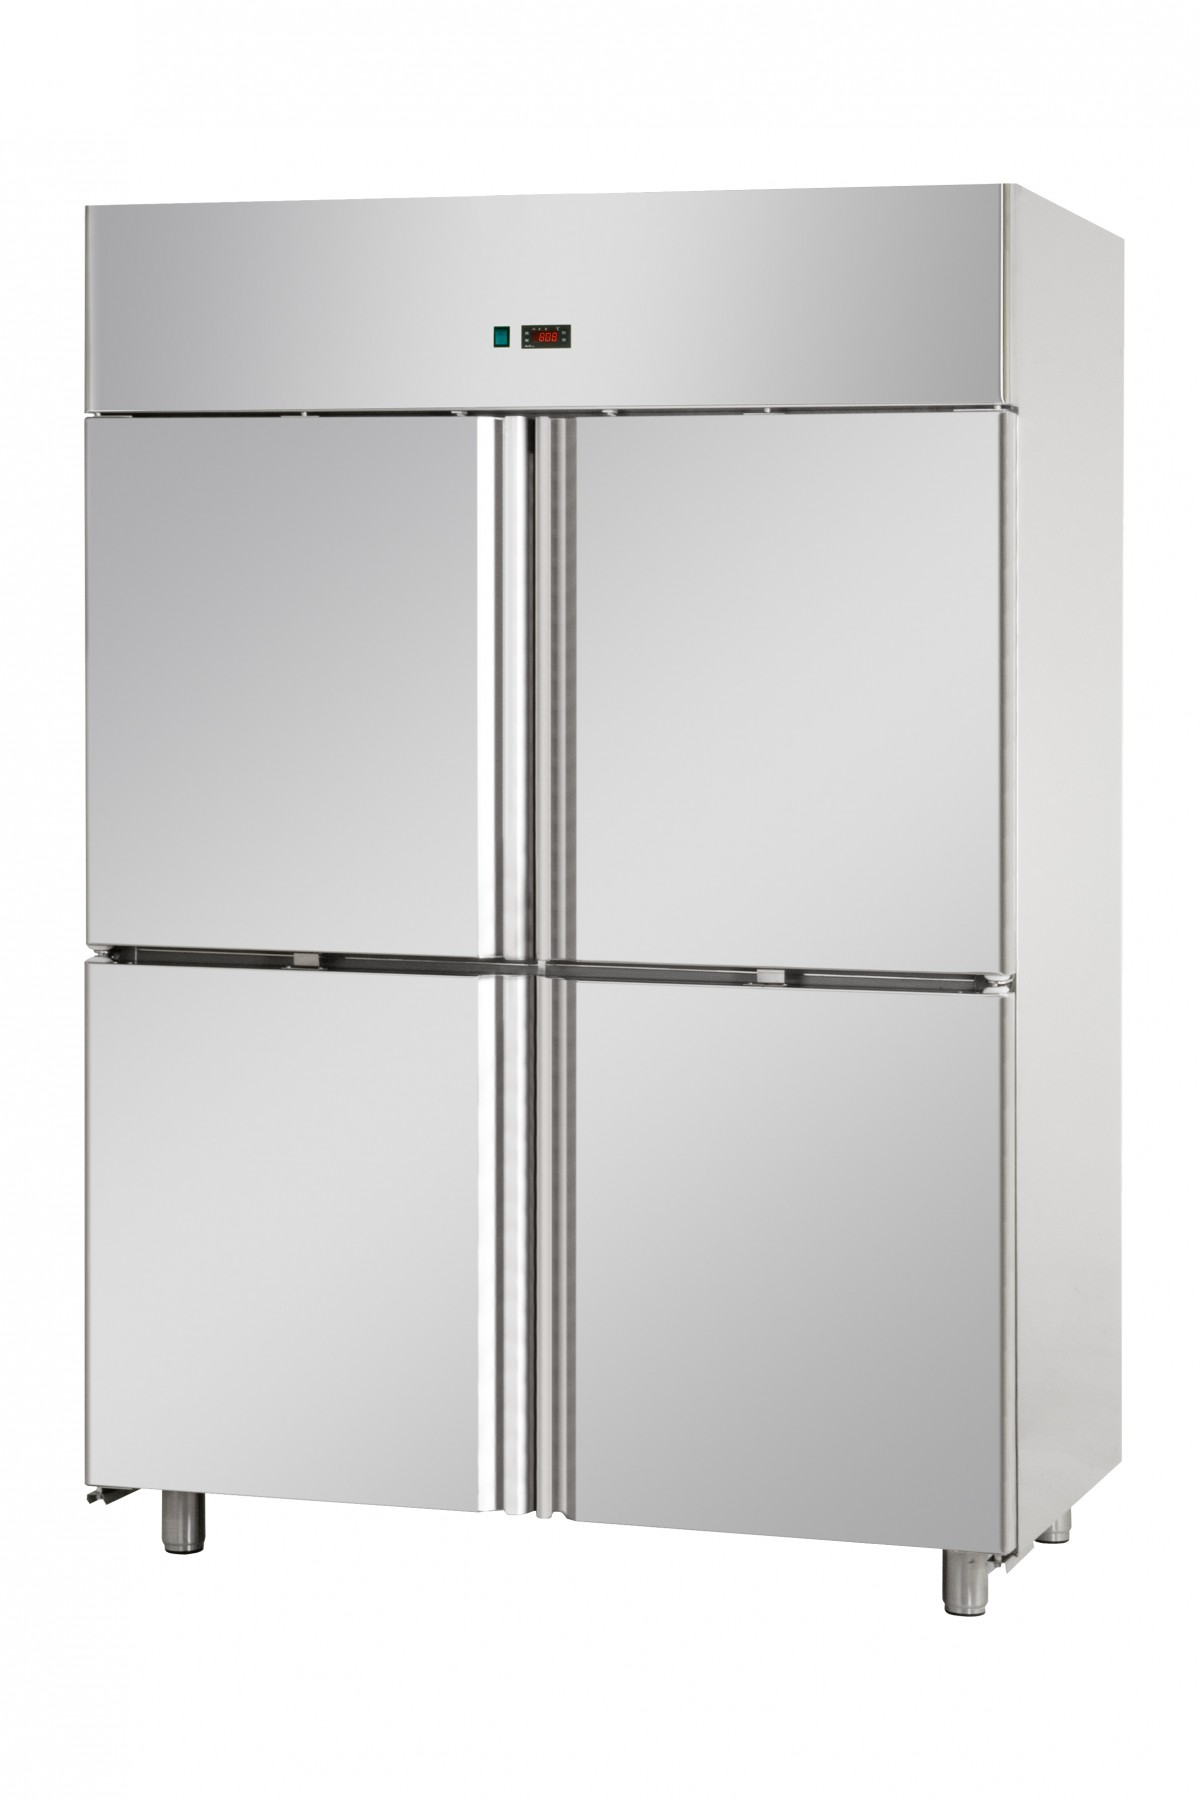 4 HALFDOORS DOUBLE TEMPERATURE (TN+TN) STAINLESS STEEL GN 2/1 REFRIGERATED  CABINET (copia)